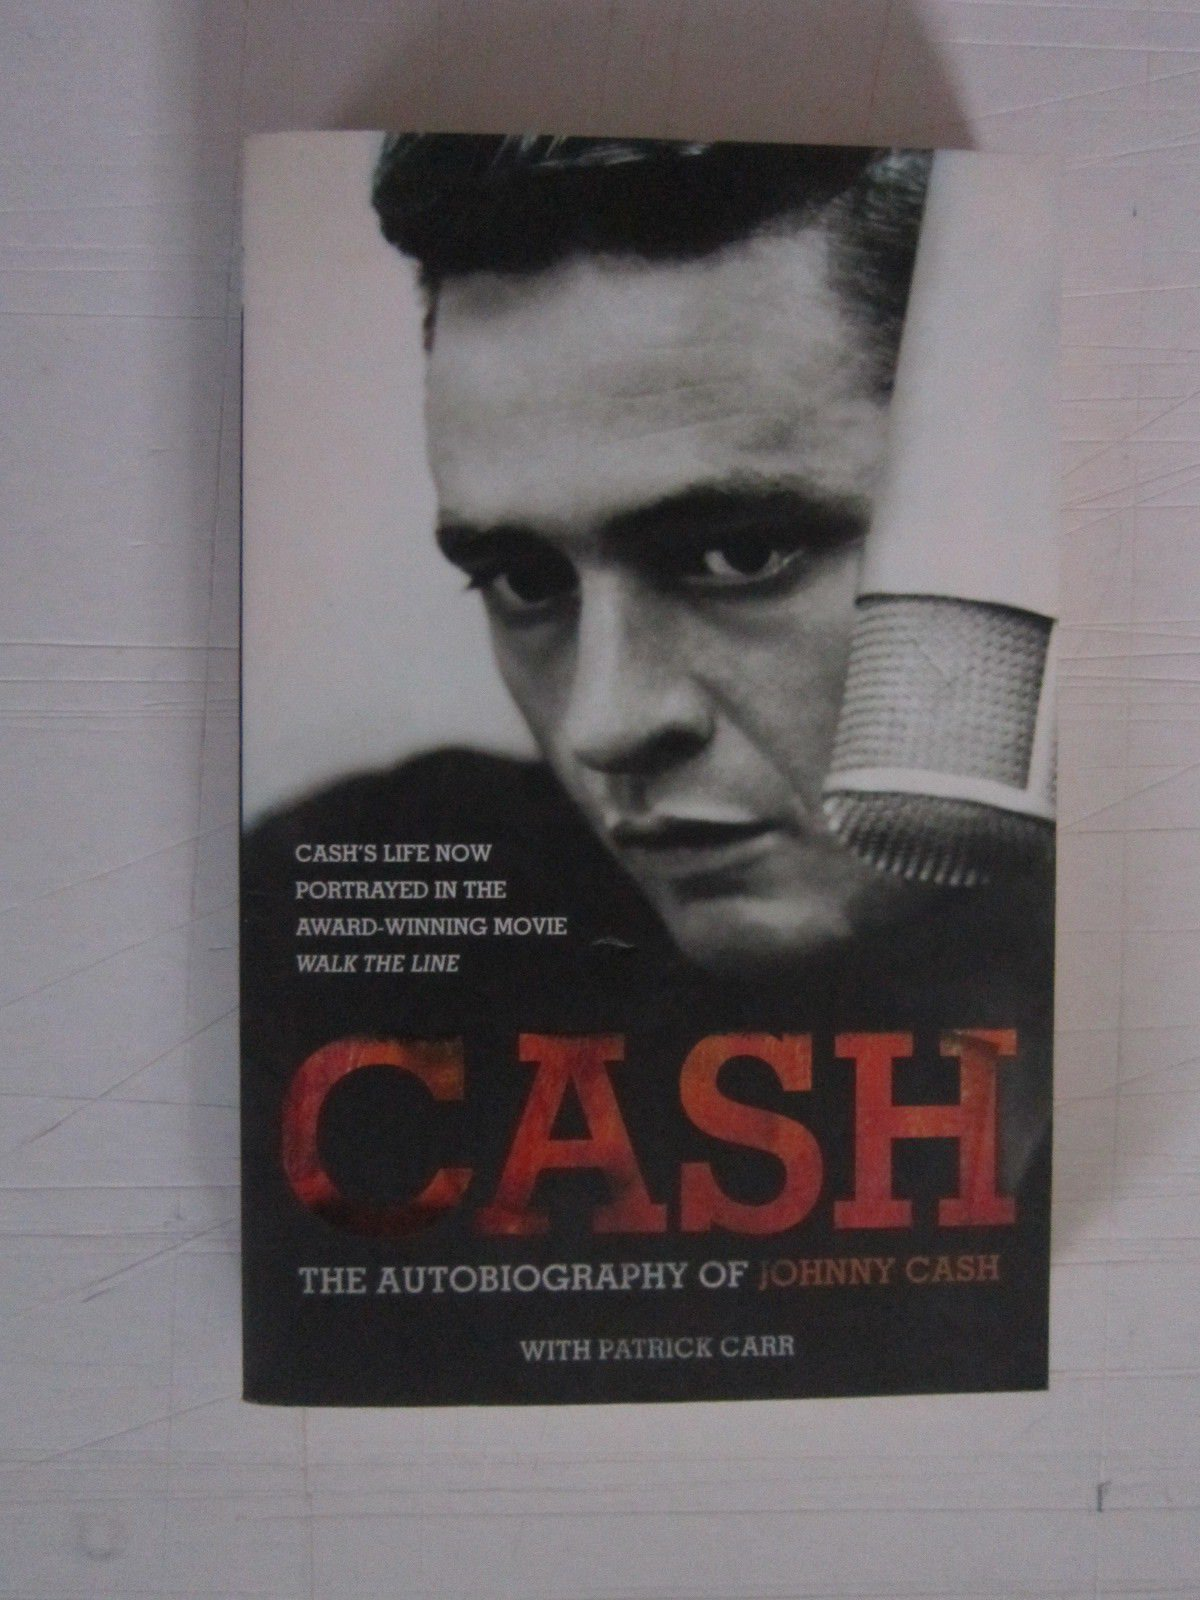 2000-04-03 The Autobiography by Johnny Cash Cash